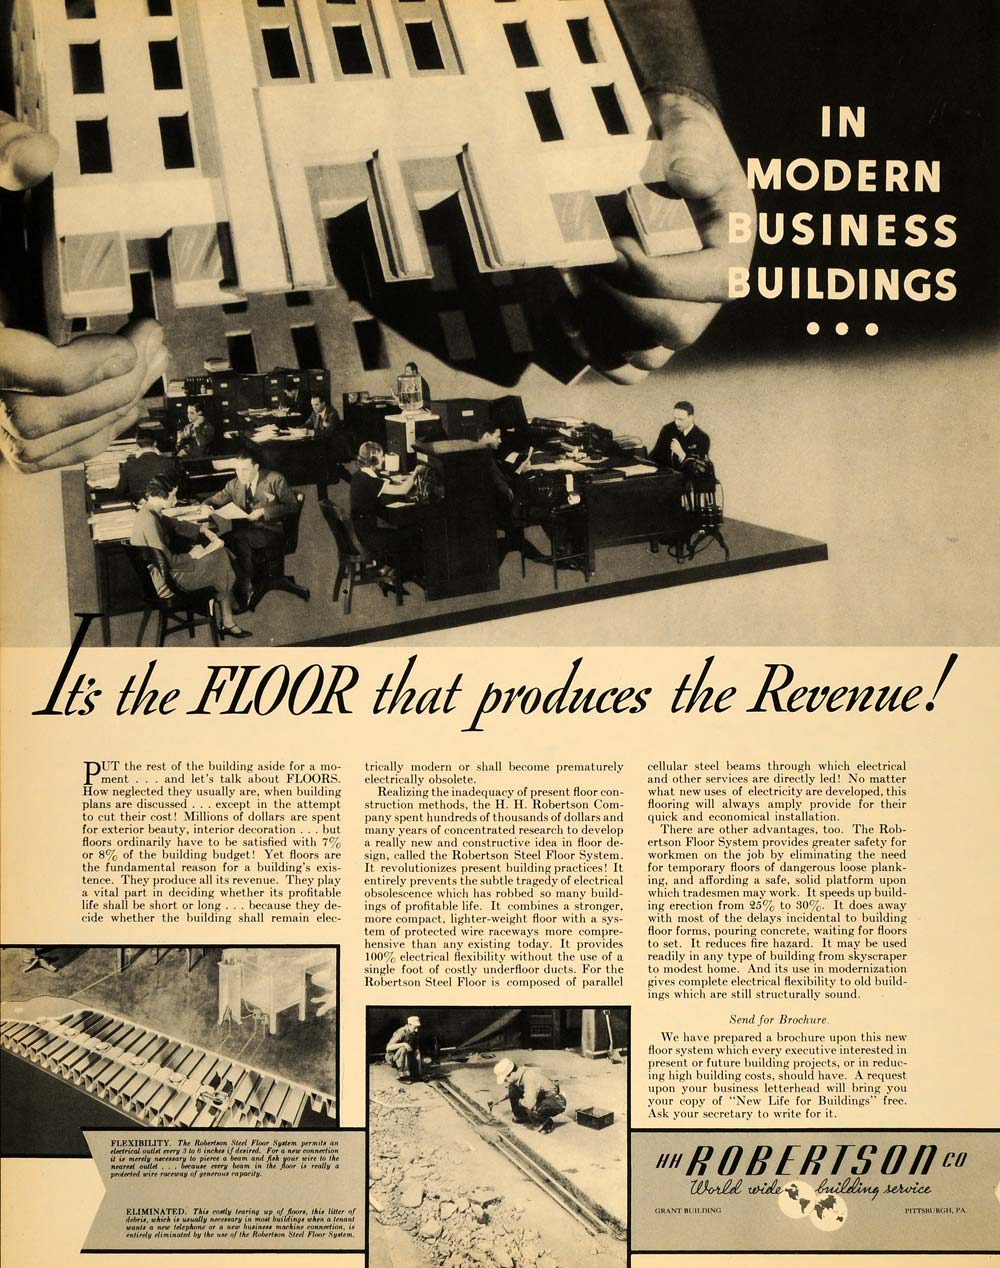 1935 Ad Construction Robertson Floor Business Buildings - ORIGINAL F3A